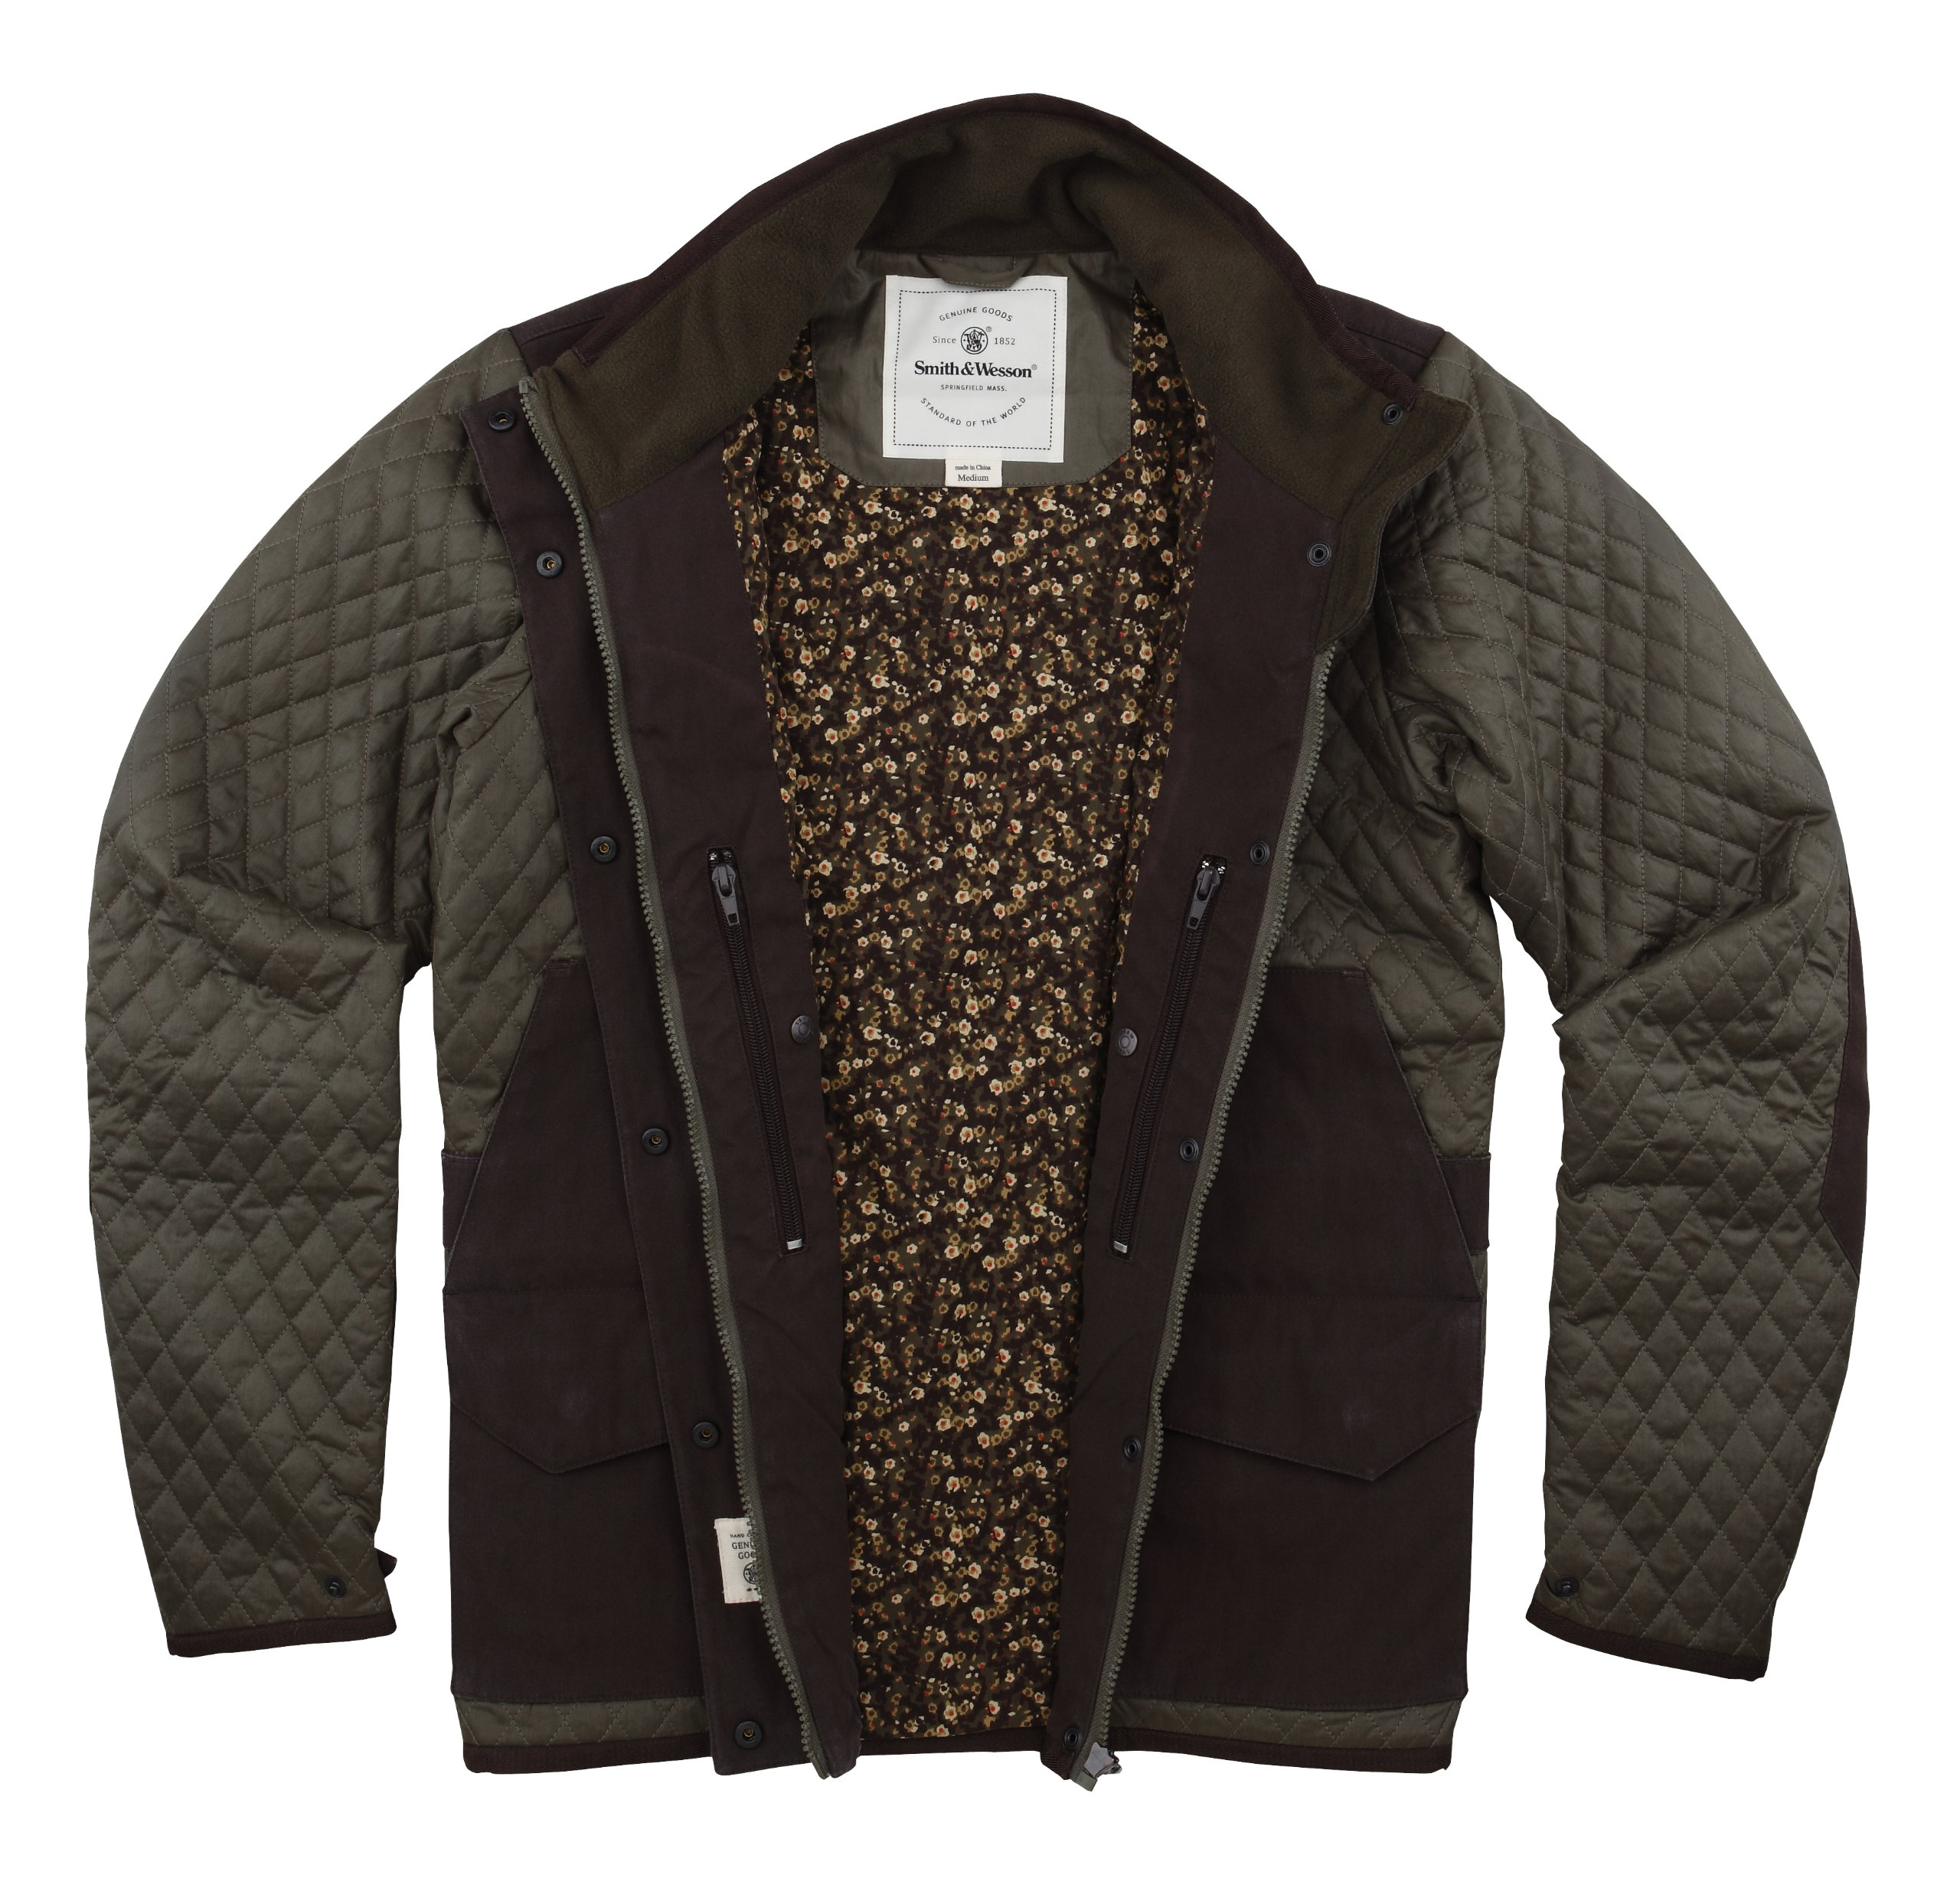 Smith &Wesson Women's Tracking Jacket Large Olive Green by Smith & Wesson (Image #2)